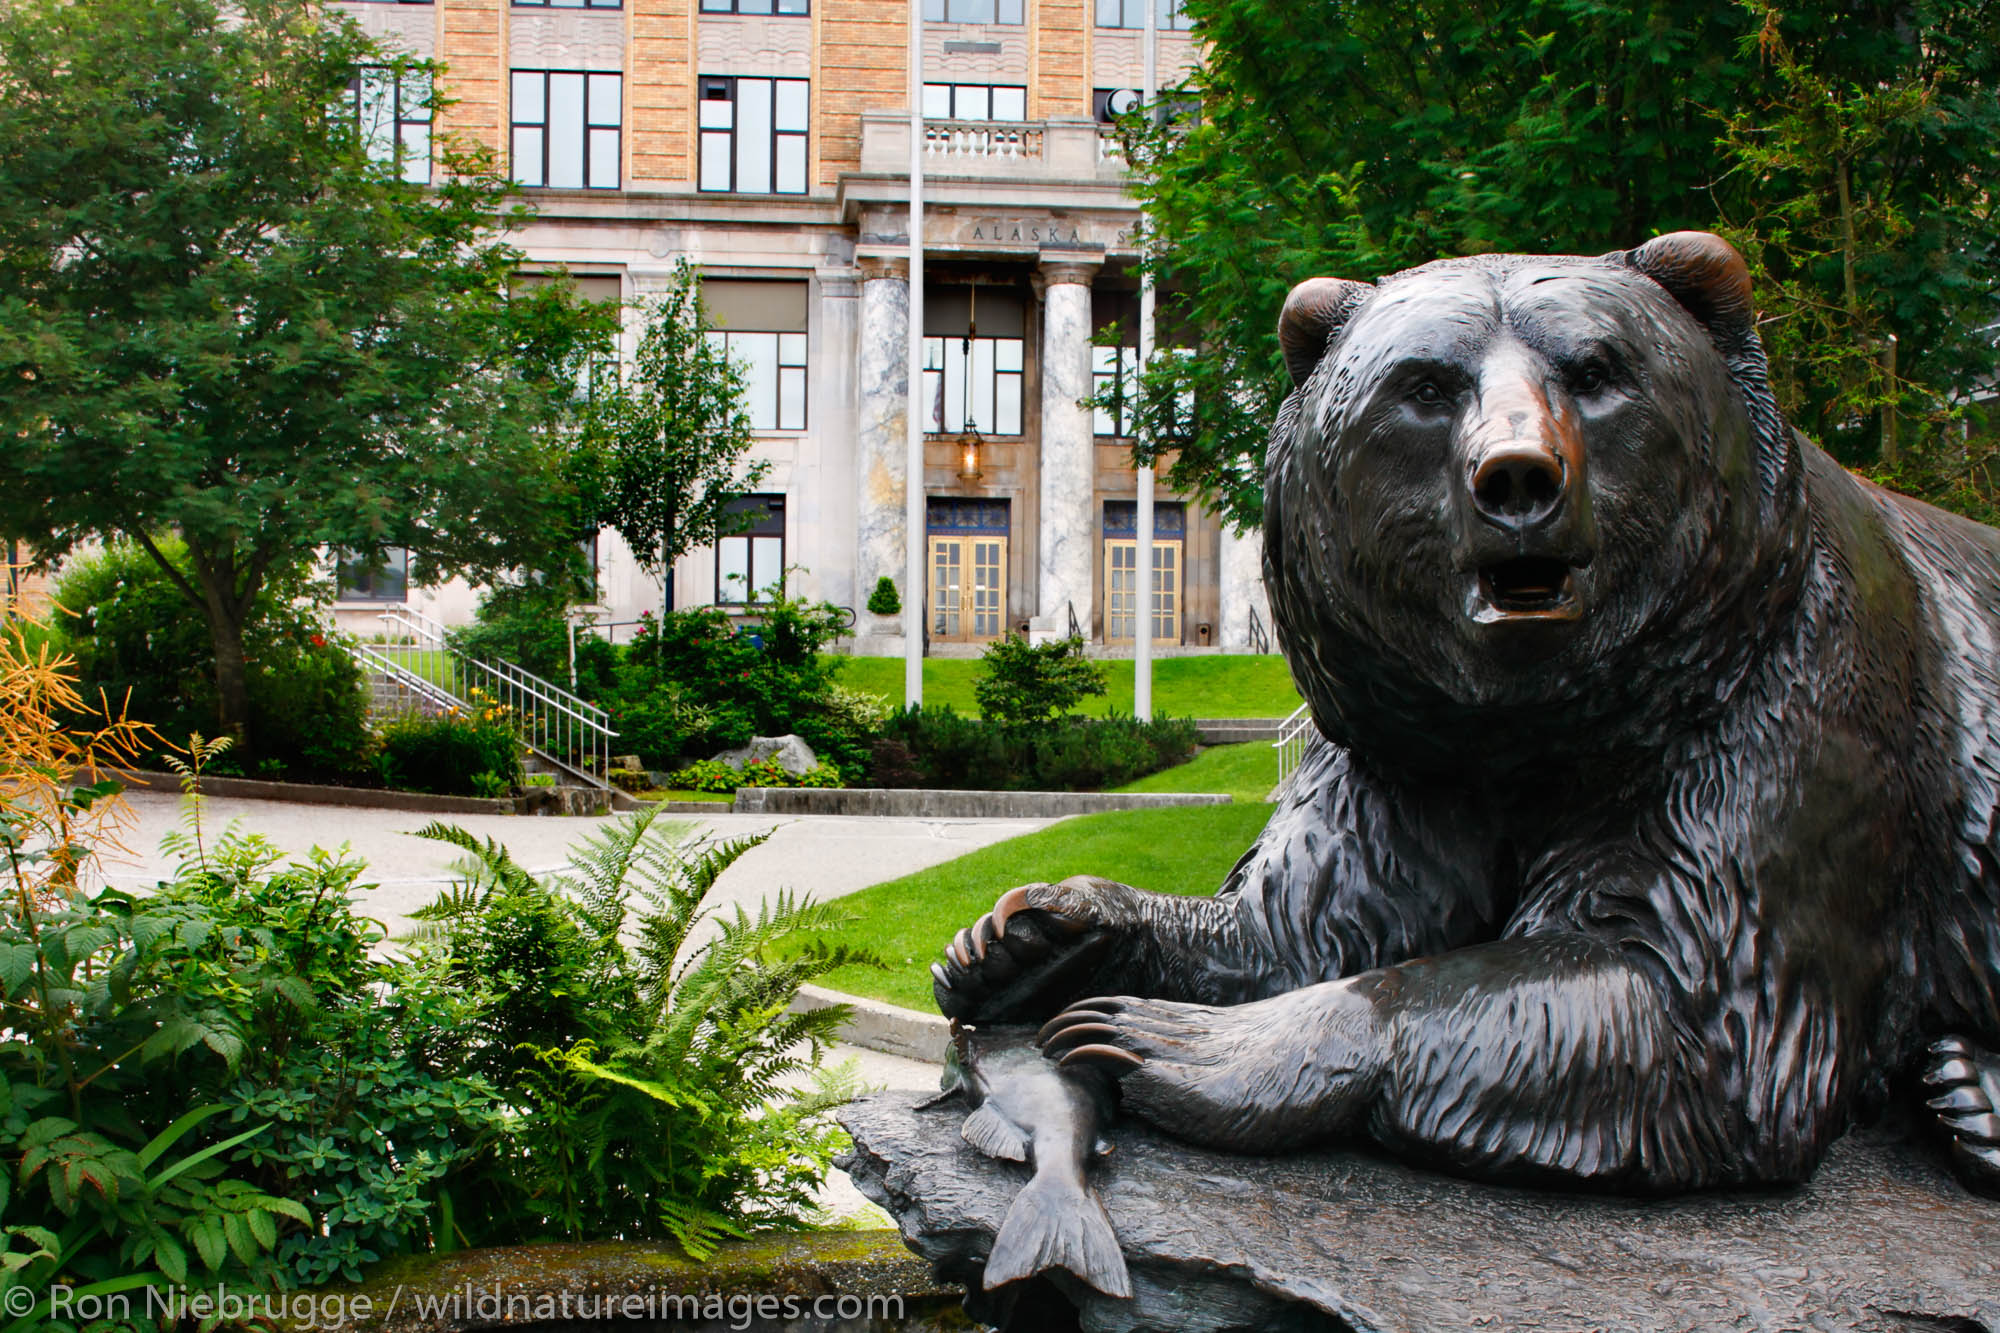 A bear statue in front of the Alaska State Capitol building, Downtown Juneau, Alaska.